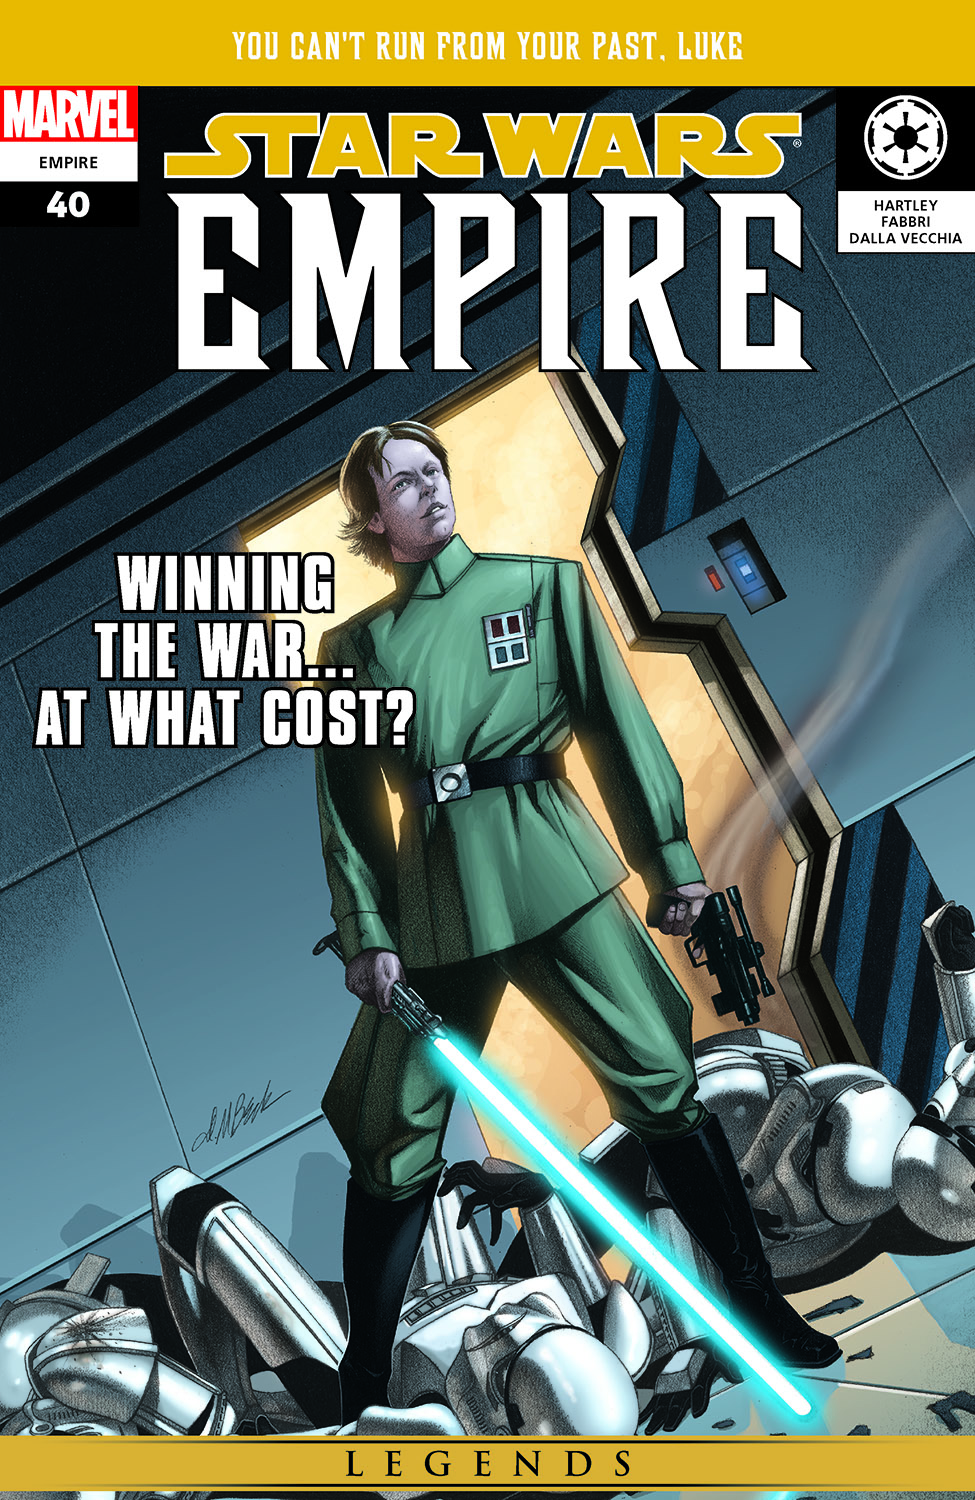 Star Wars: Empire (2002) #40